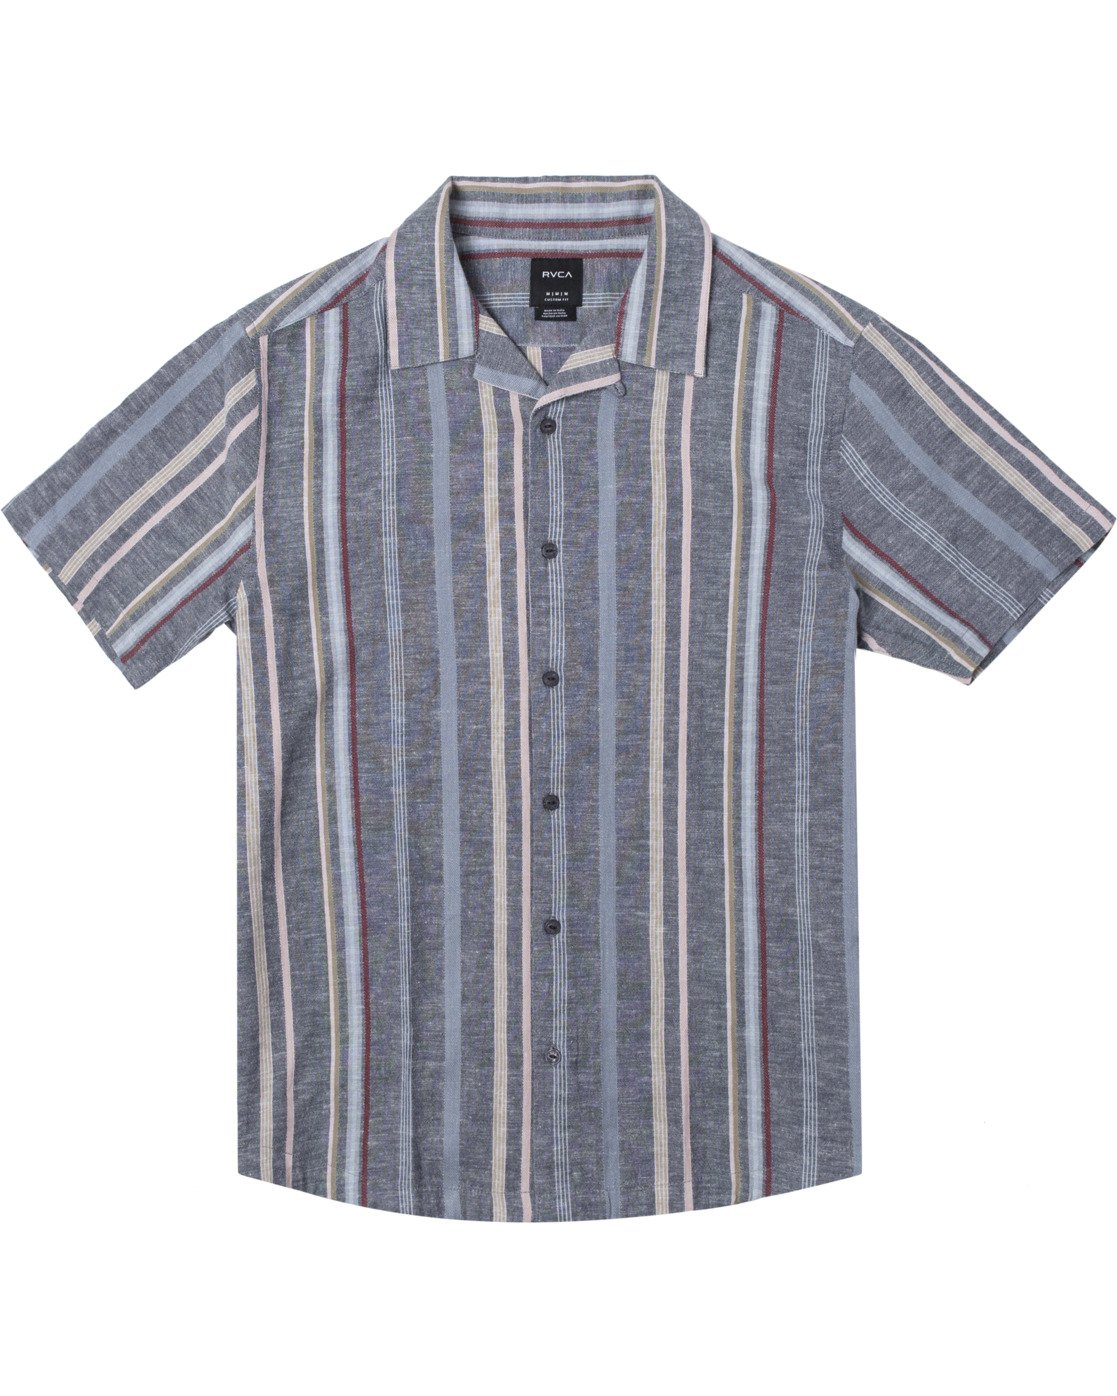 0 REPITITION SHORT SLEEVE SHIRT  AVYWT00130 RVCA